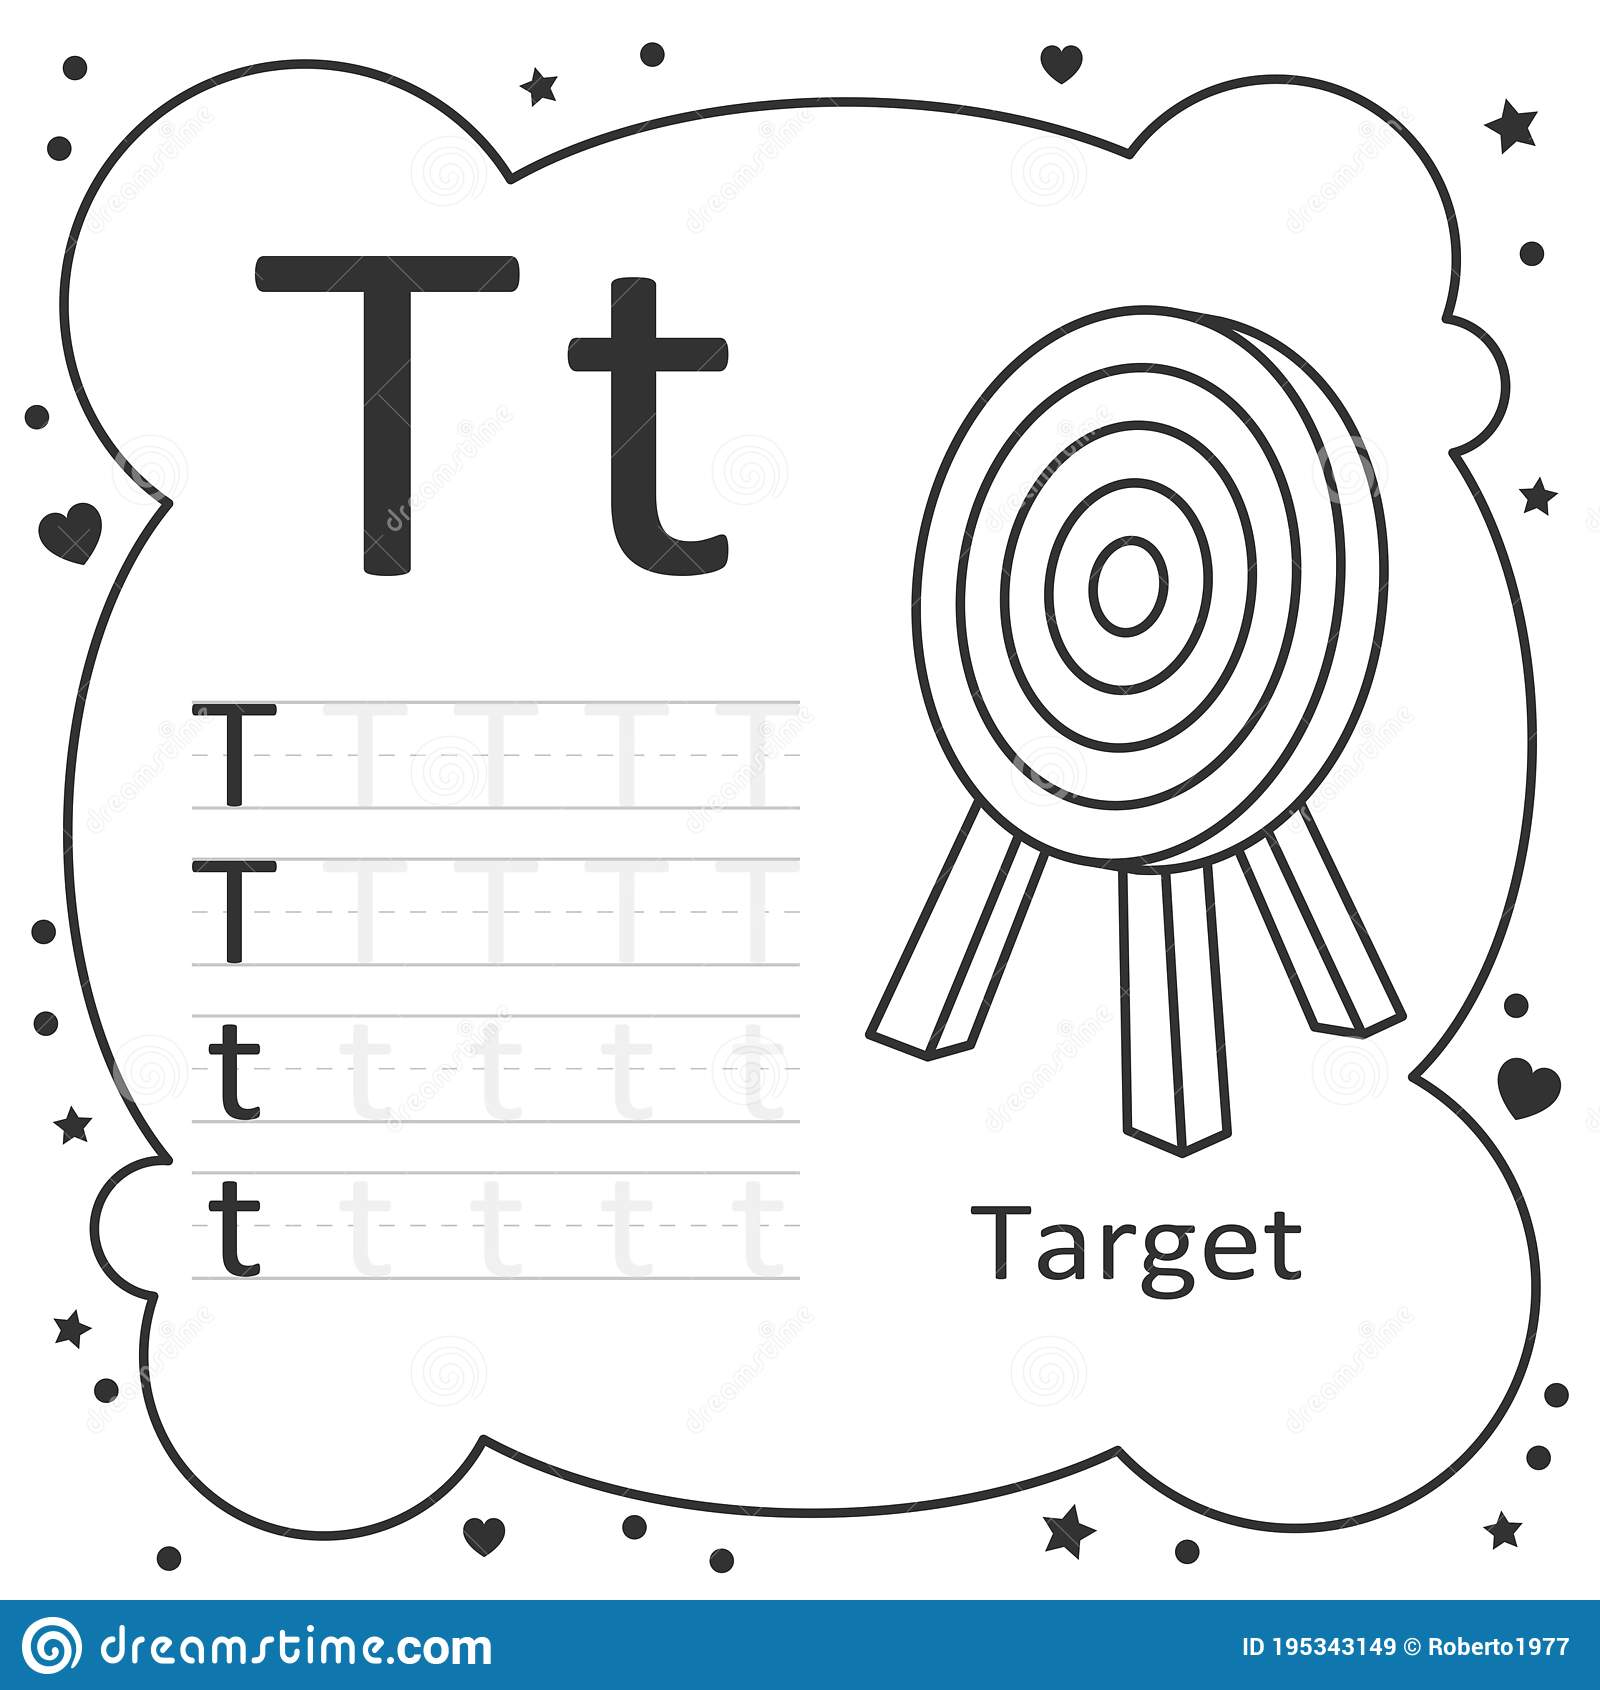 Coloring Alphabet Tracing Letters Target Stock Vector